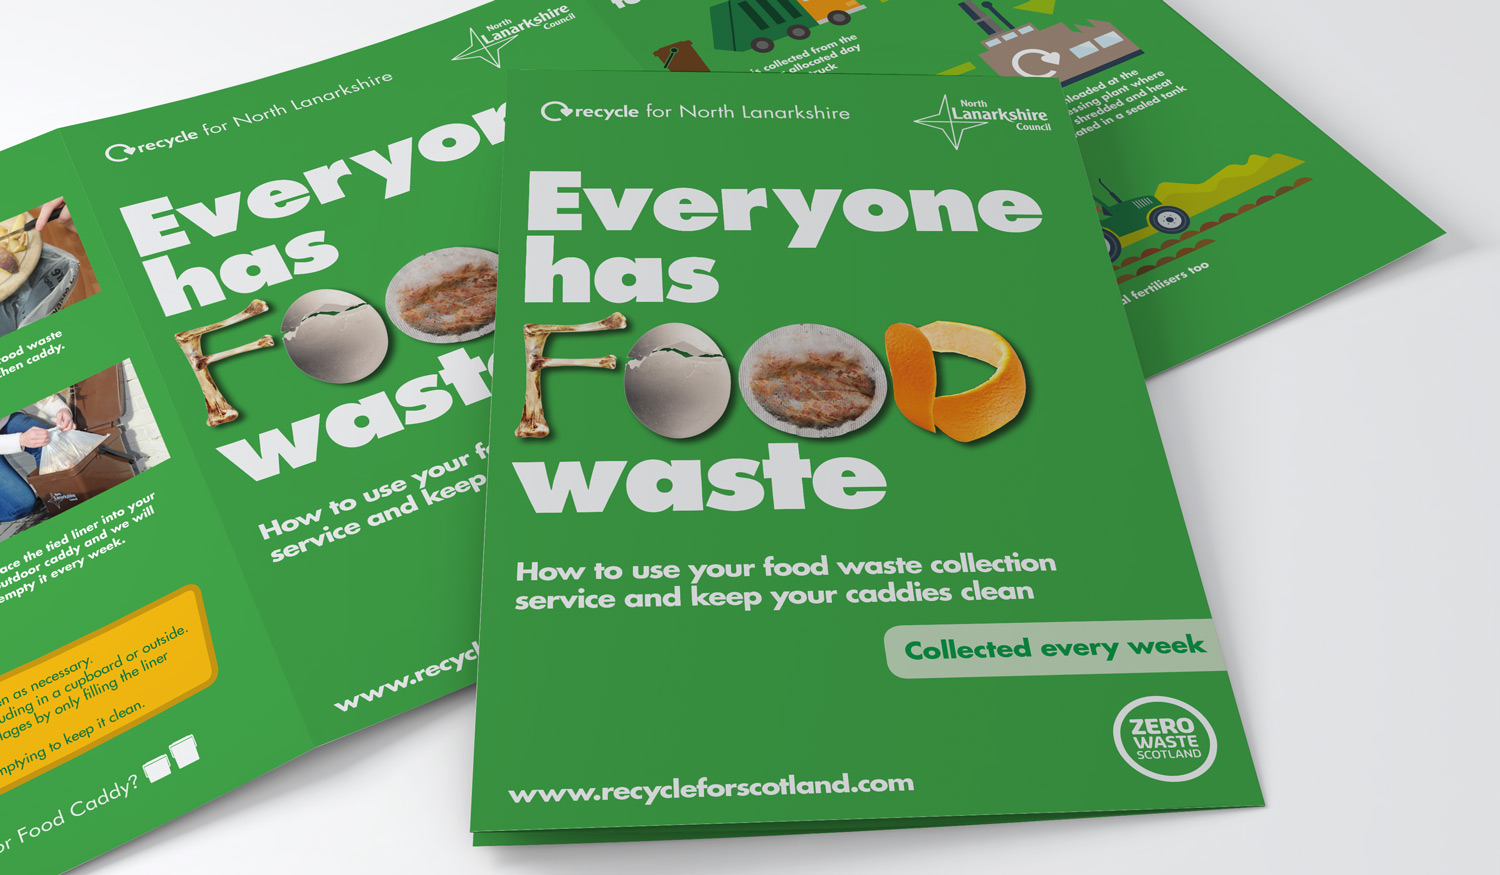 Billboard-Local-Authorities-Recycling-Leaflet-Food-Waste-get-it-sorted.jpg